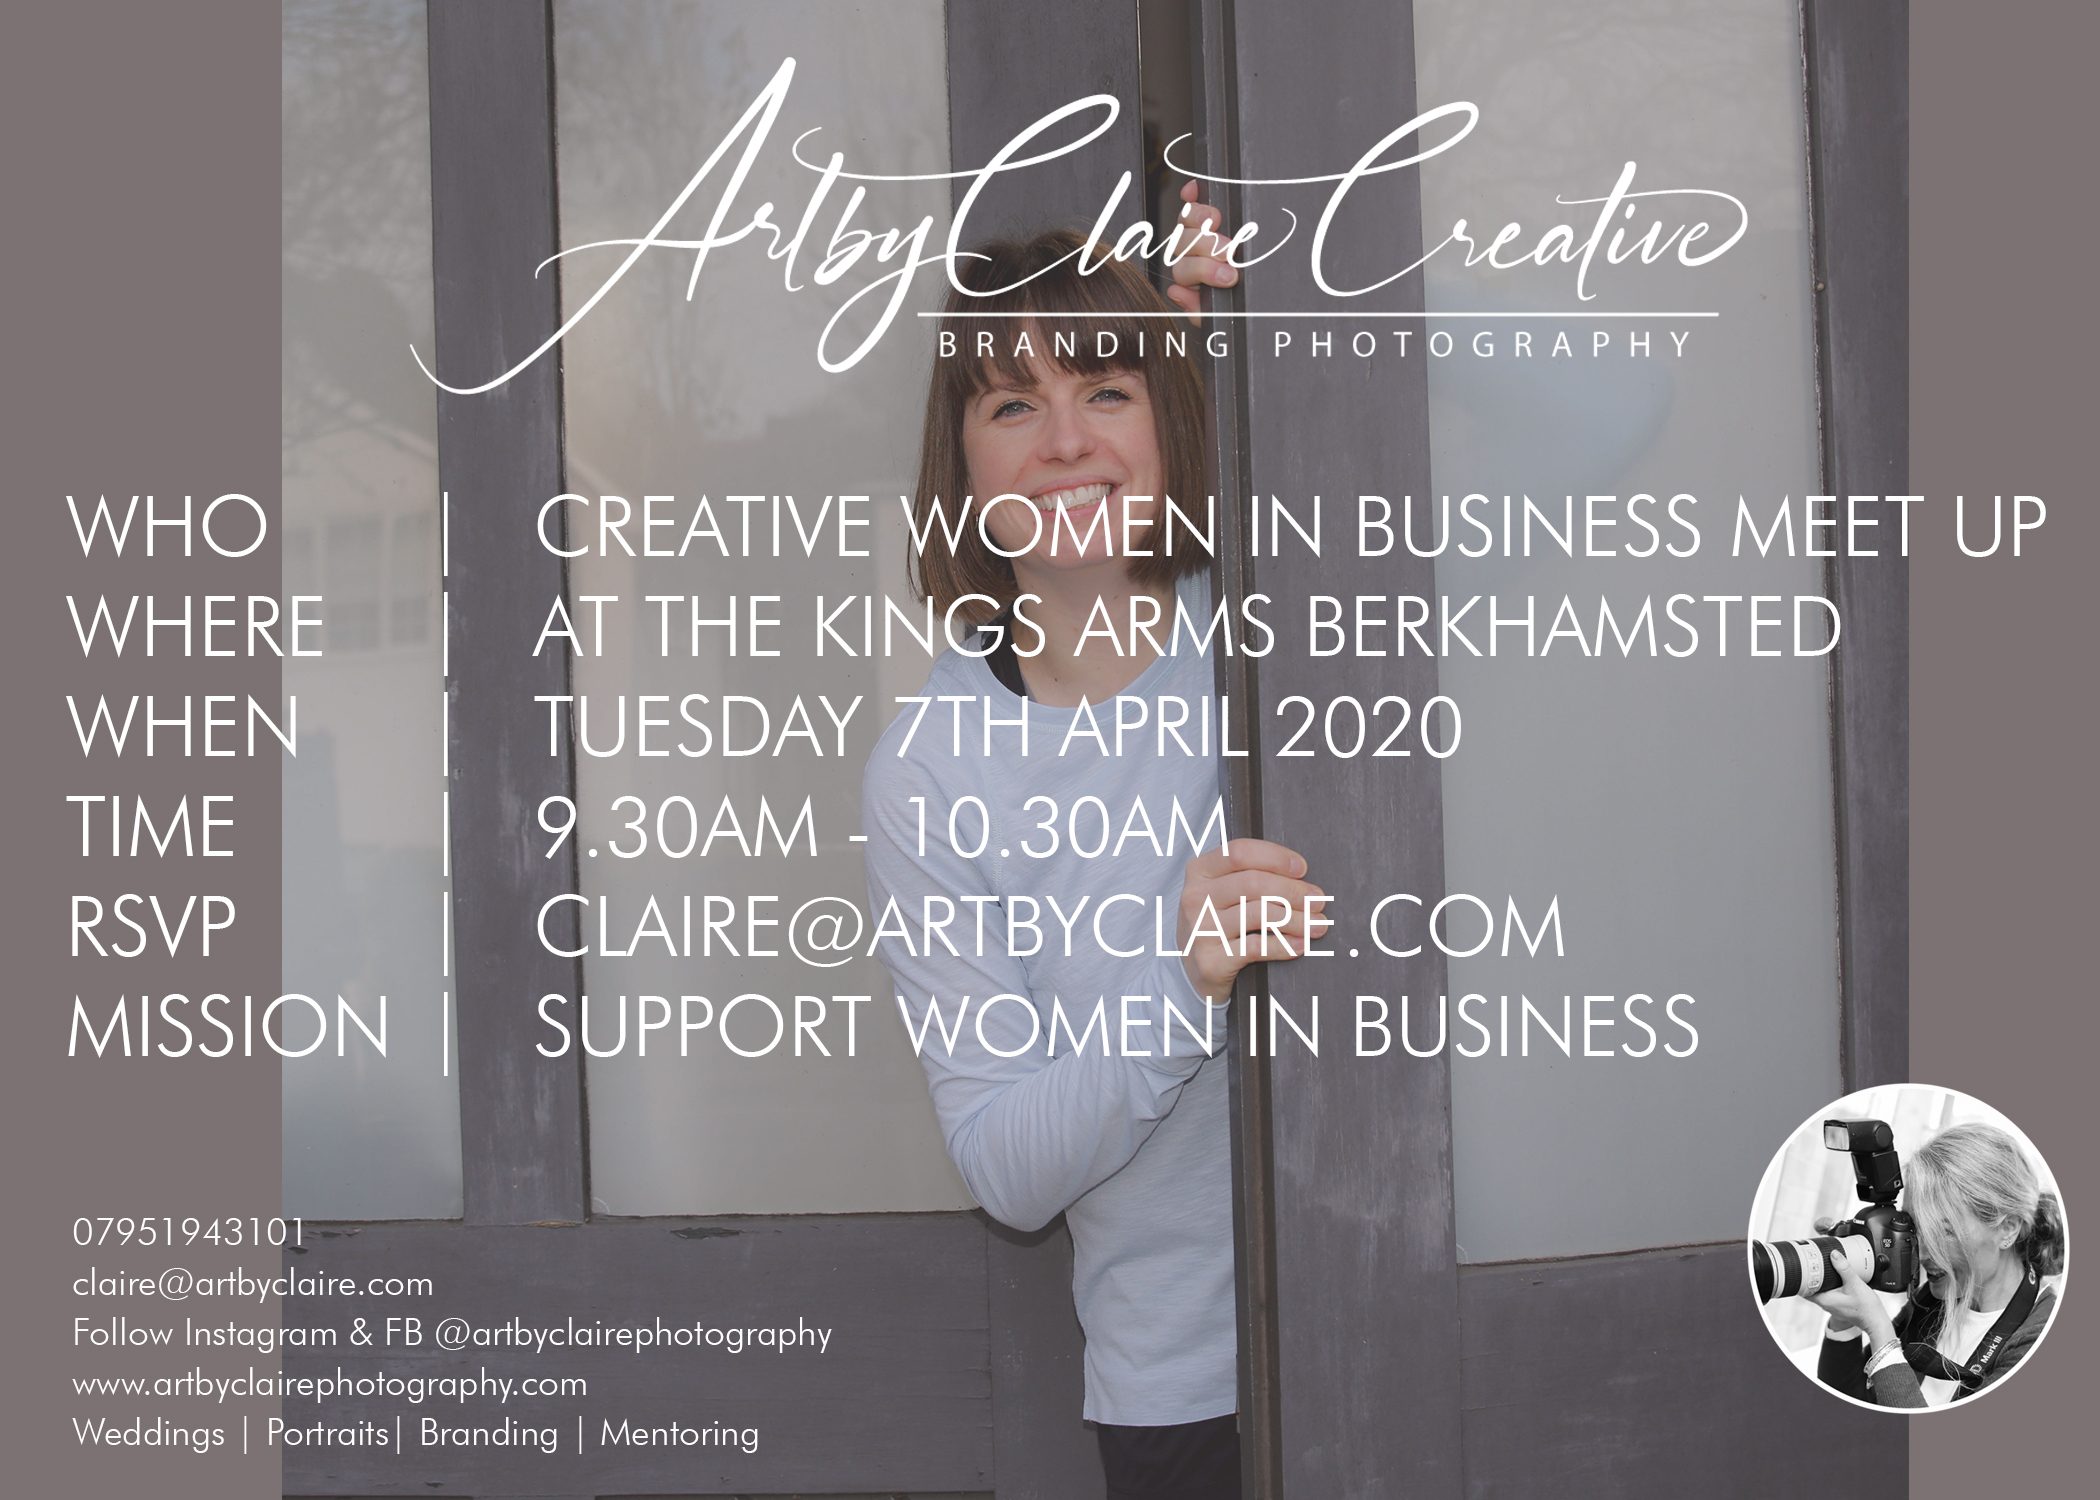 ArtbyClaire Creative Branding for women in business meet up at The Kings Arms Berkhamsted